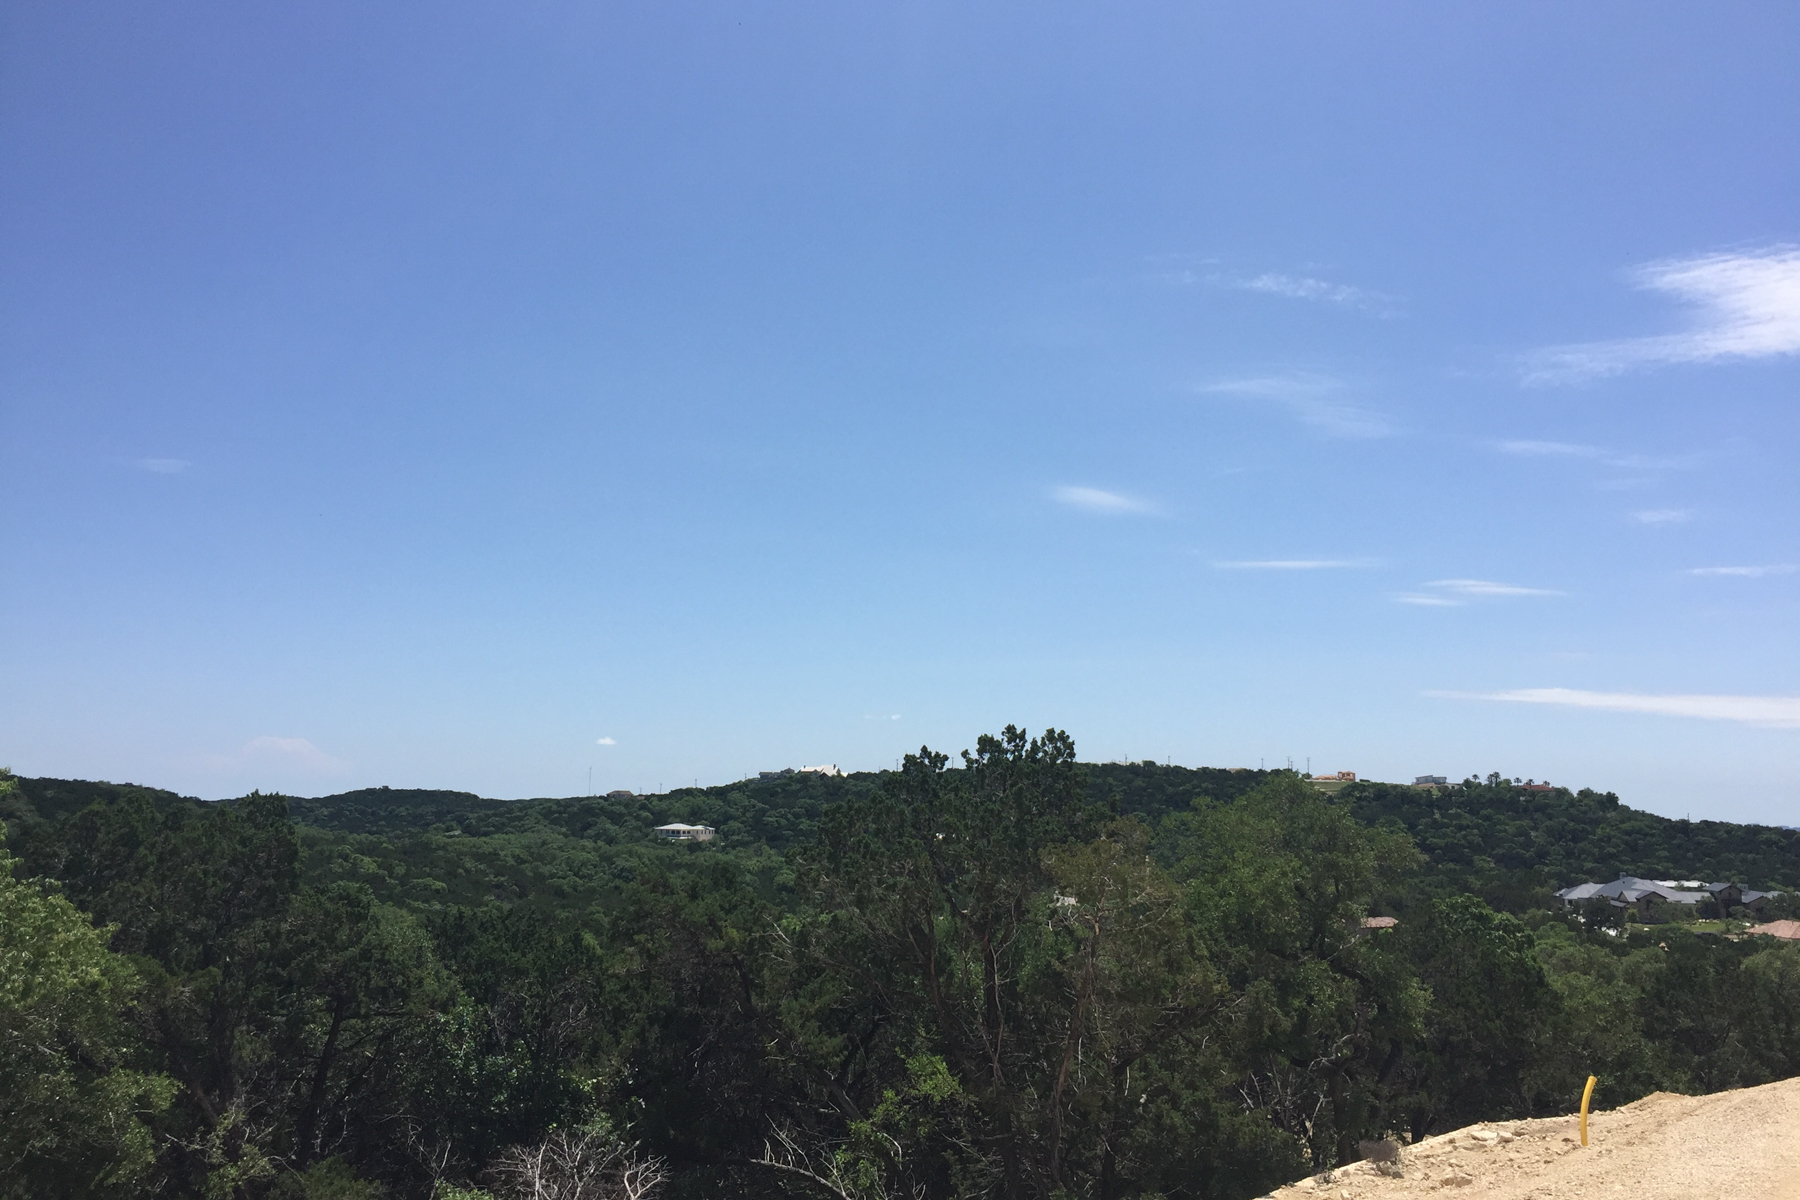 Additional photo for property listing at Breathtaking Views in The Dominion 5934 Camino Alturas San Antonio, Texas 78257 United States